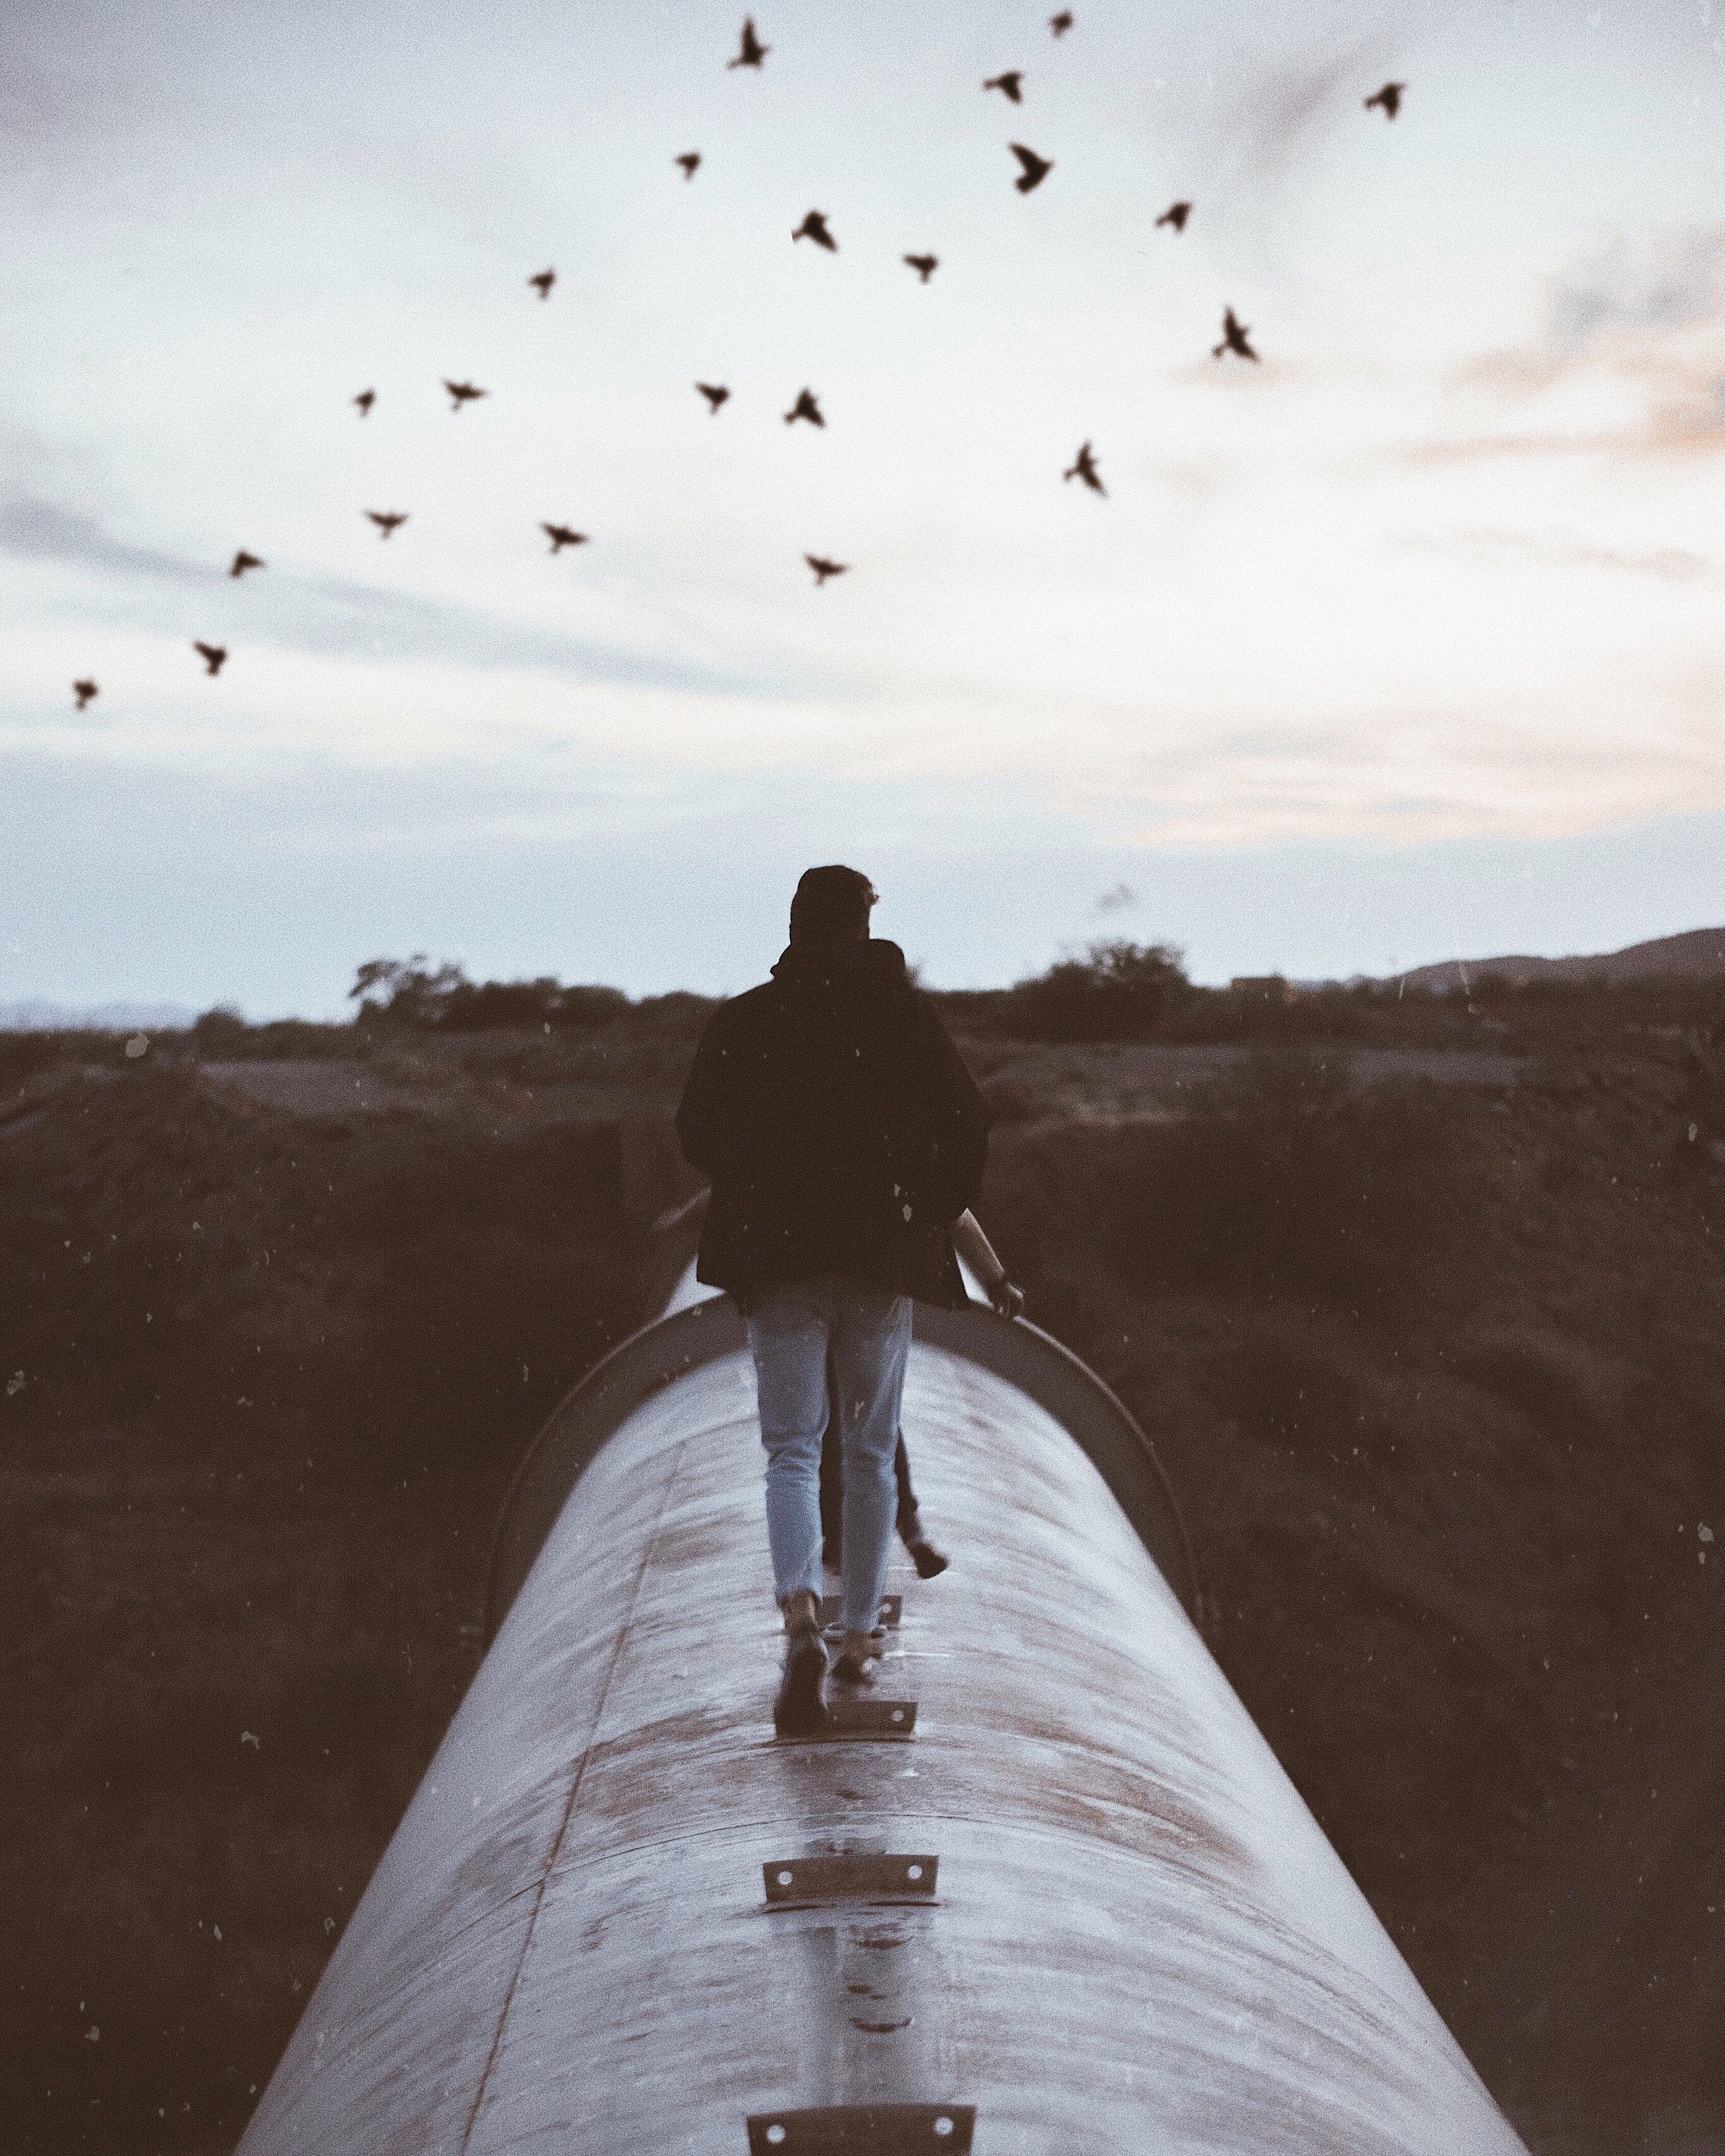 person standing on gray metal pipe under flying birds during daytime